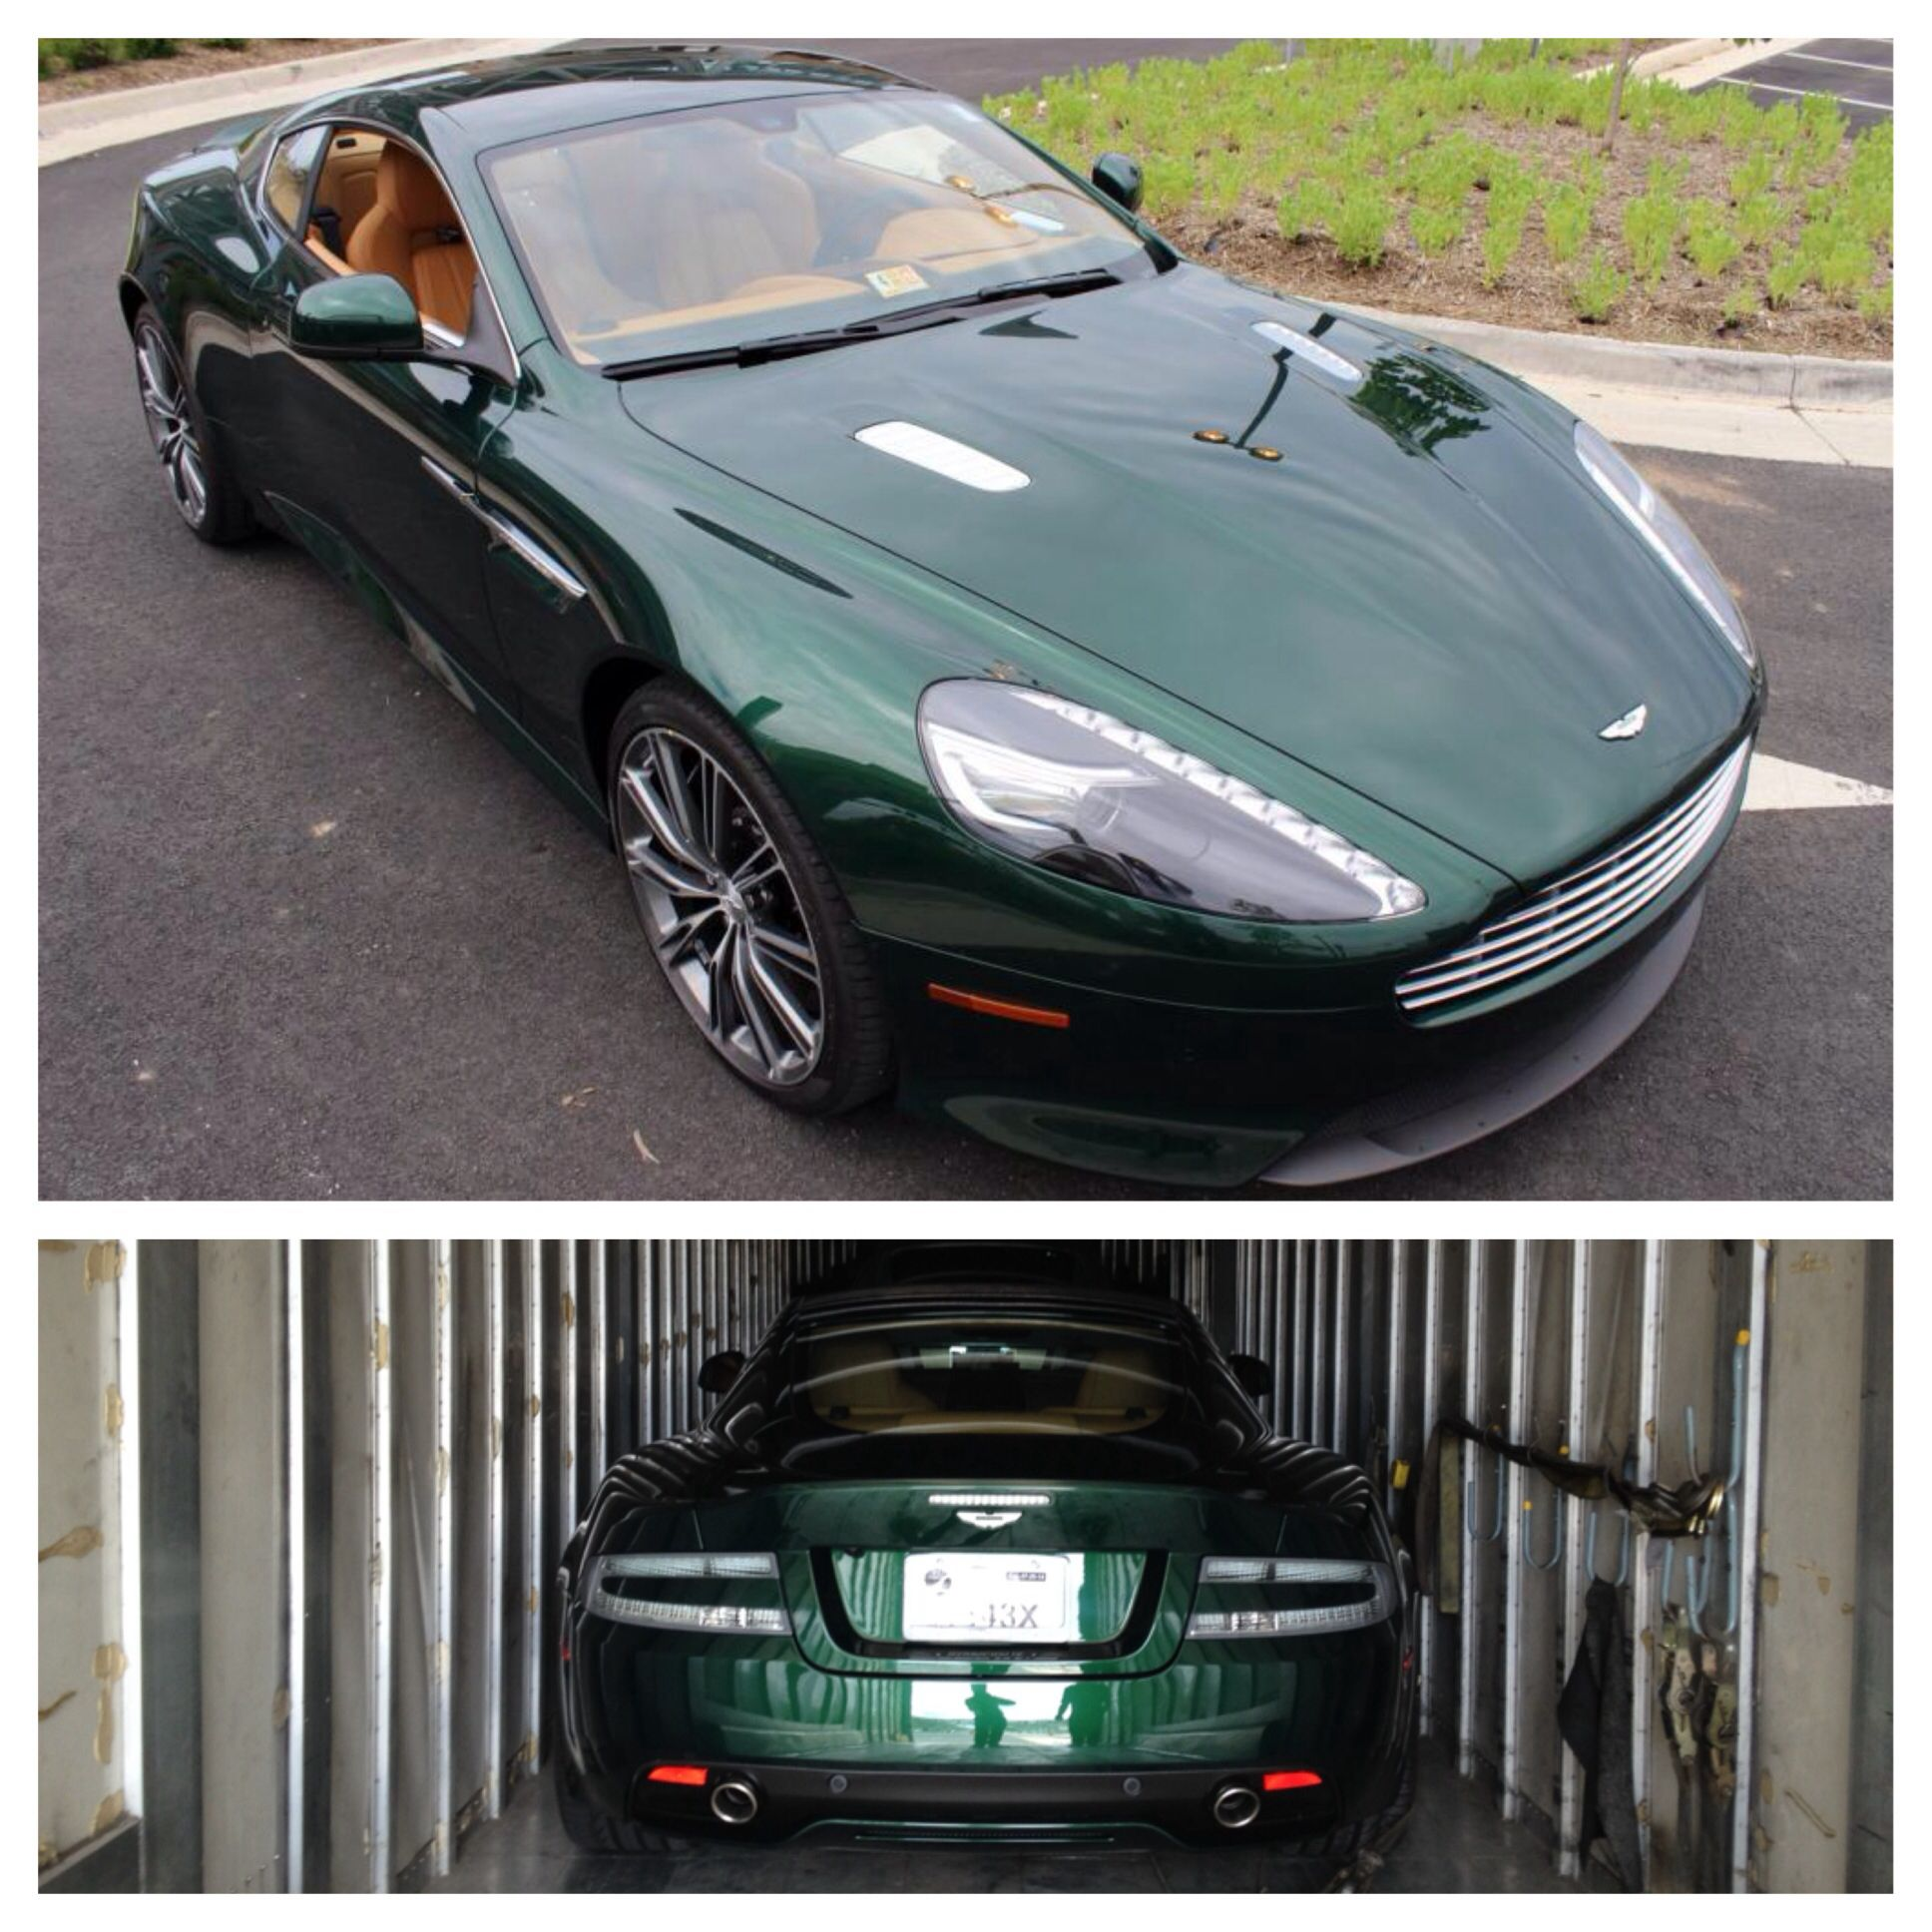 Aston Martin Db9: Albert, Congratulations, Your 14 Aston Martin DB9 Coupe In